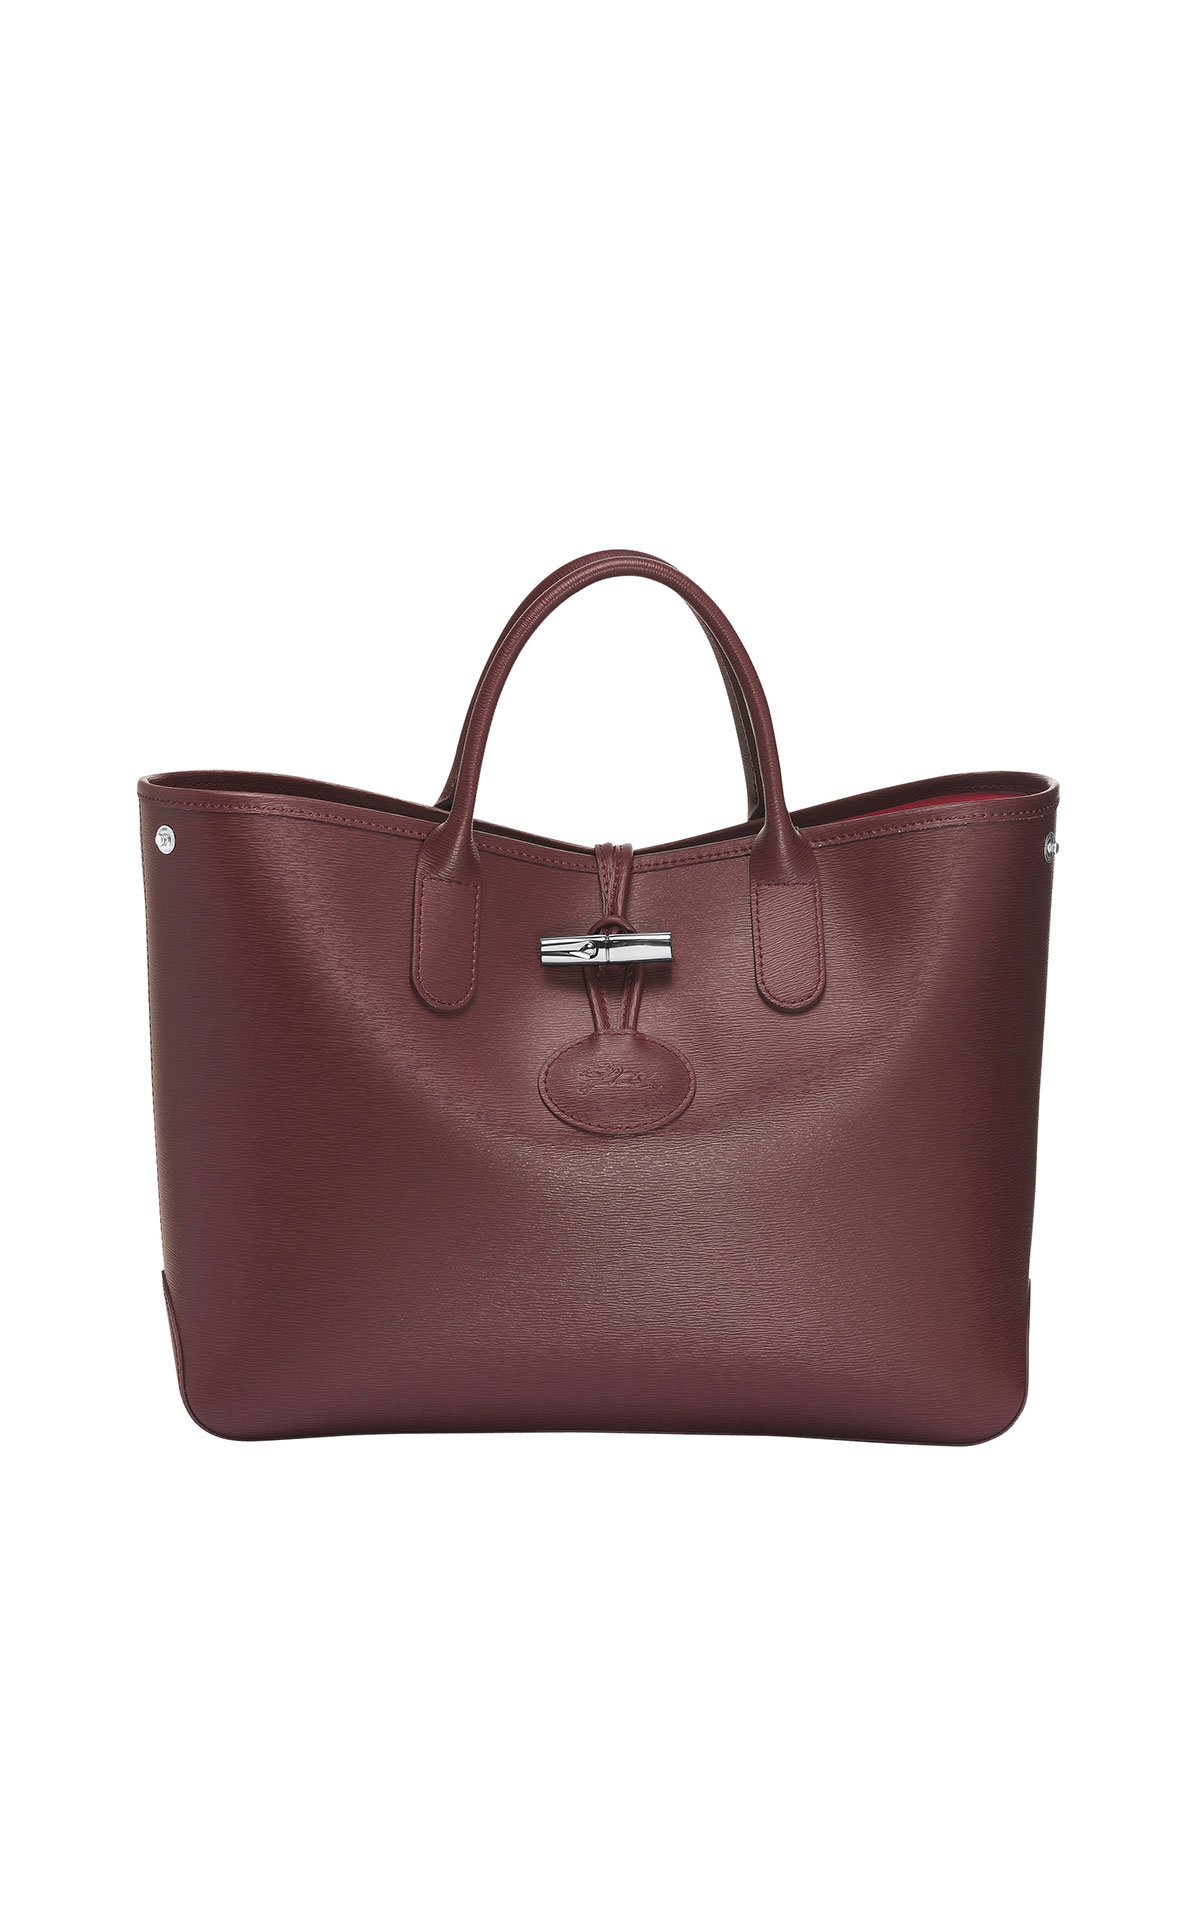 Longchamp Roseau short handle leather tote in brandy from Bicester Village